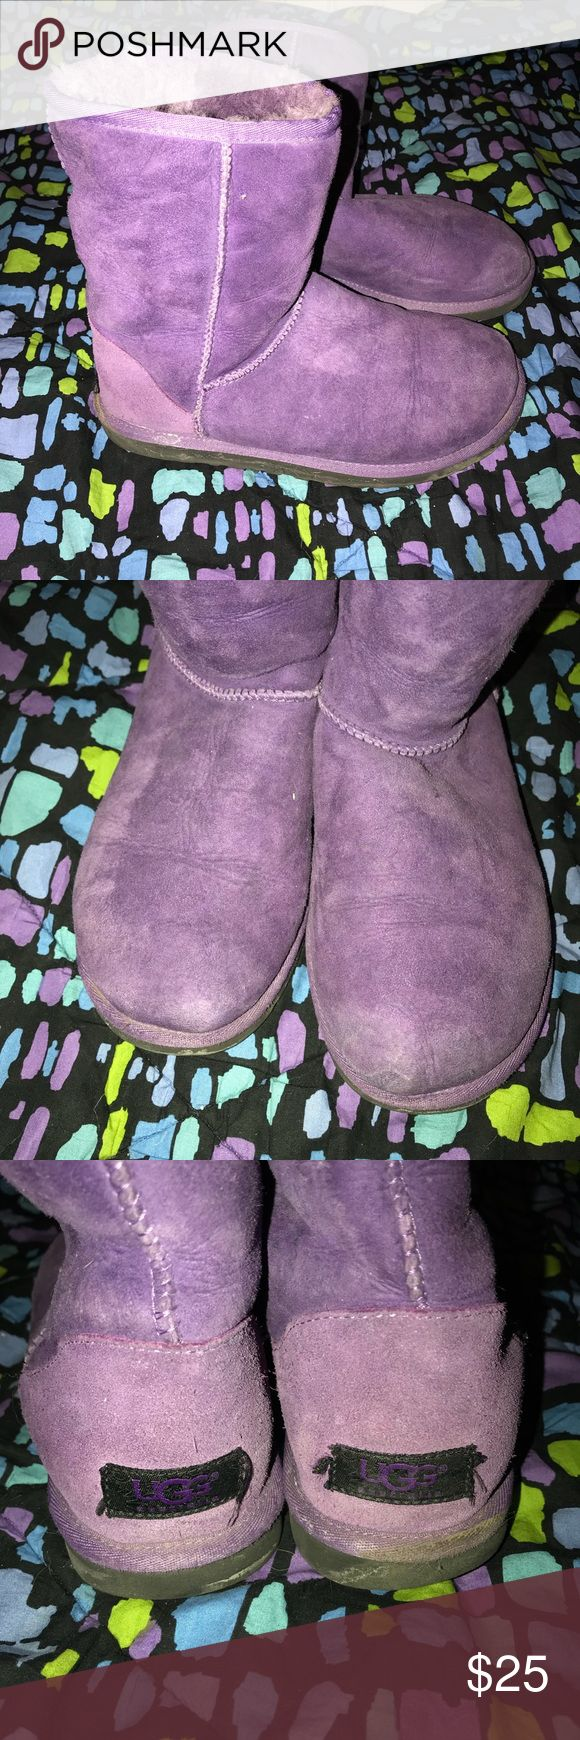 ☮️ Purple UGG Boots ☮️ Purple UGG boots  Size 6 Well worn  Small missing chunk of fur from inside, not visible from outside, see images UGG Shoes Winter & Rain Boots